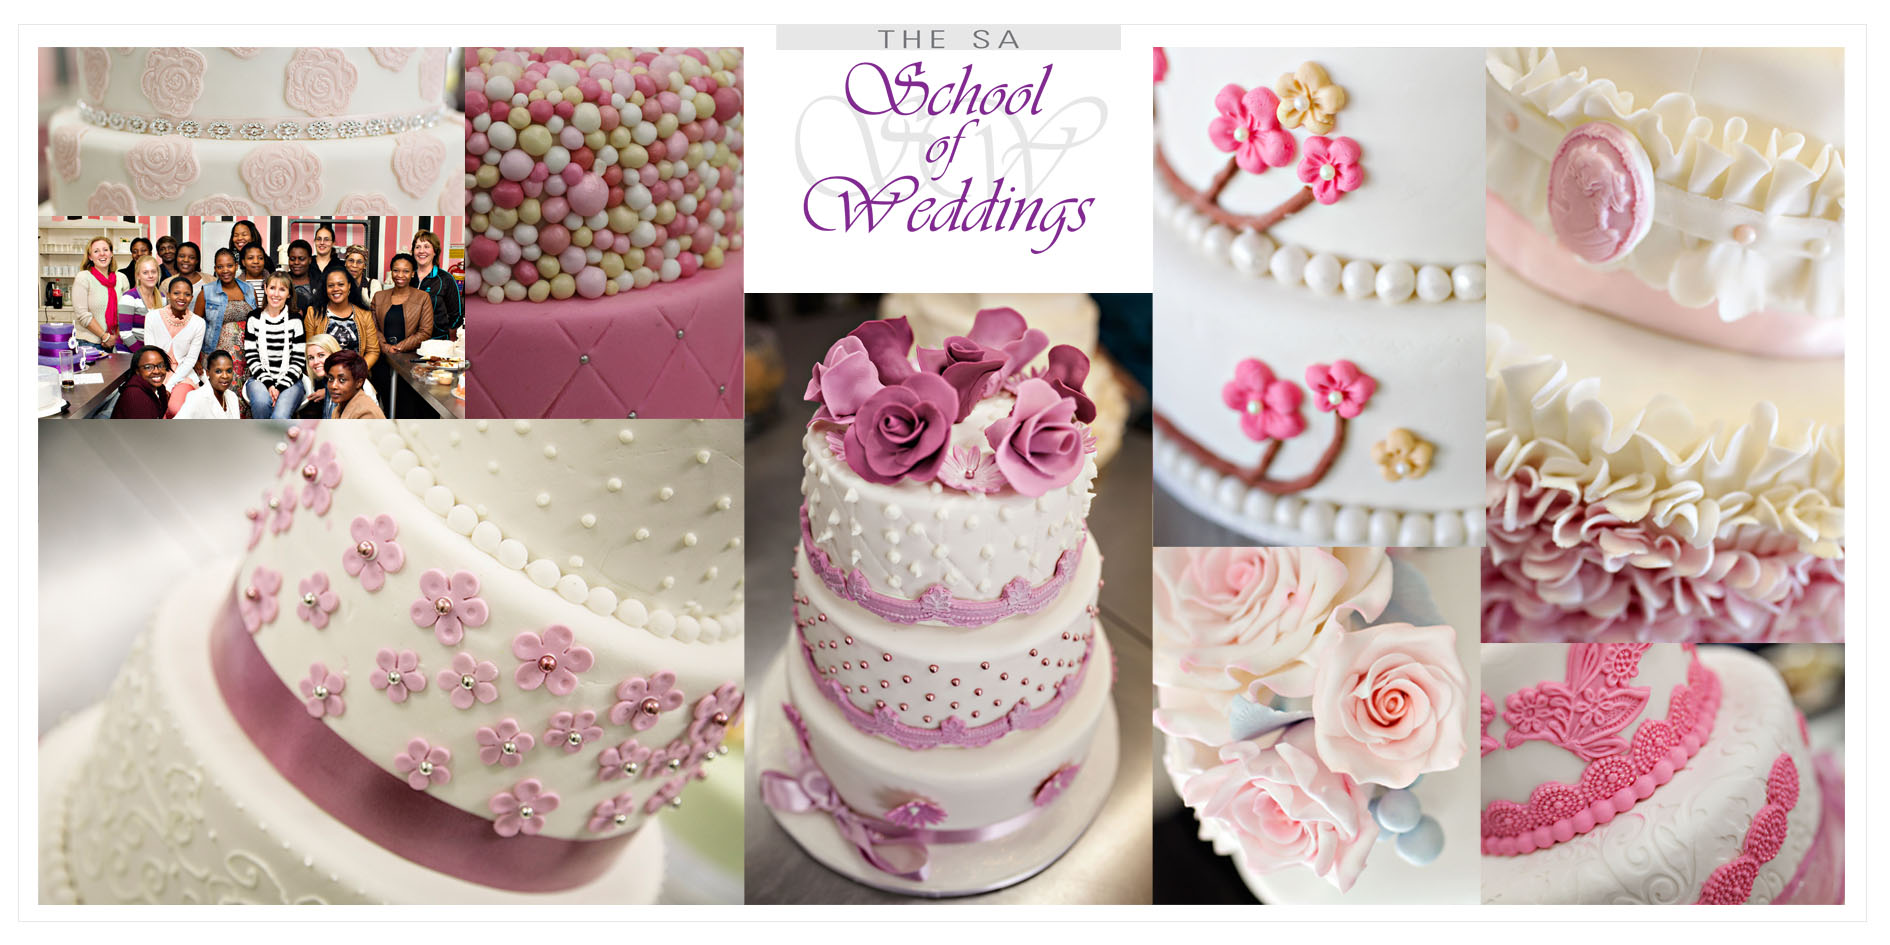 Home N Decor Wedding Cake Courses On Cake Baking Amp Decorating Baking